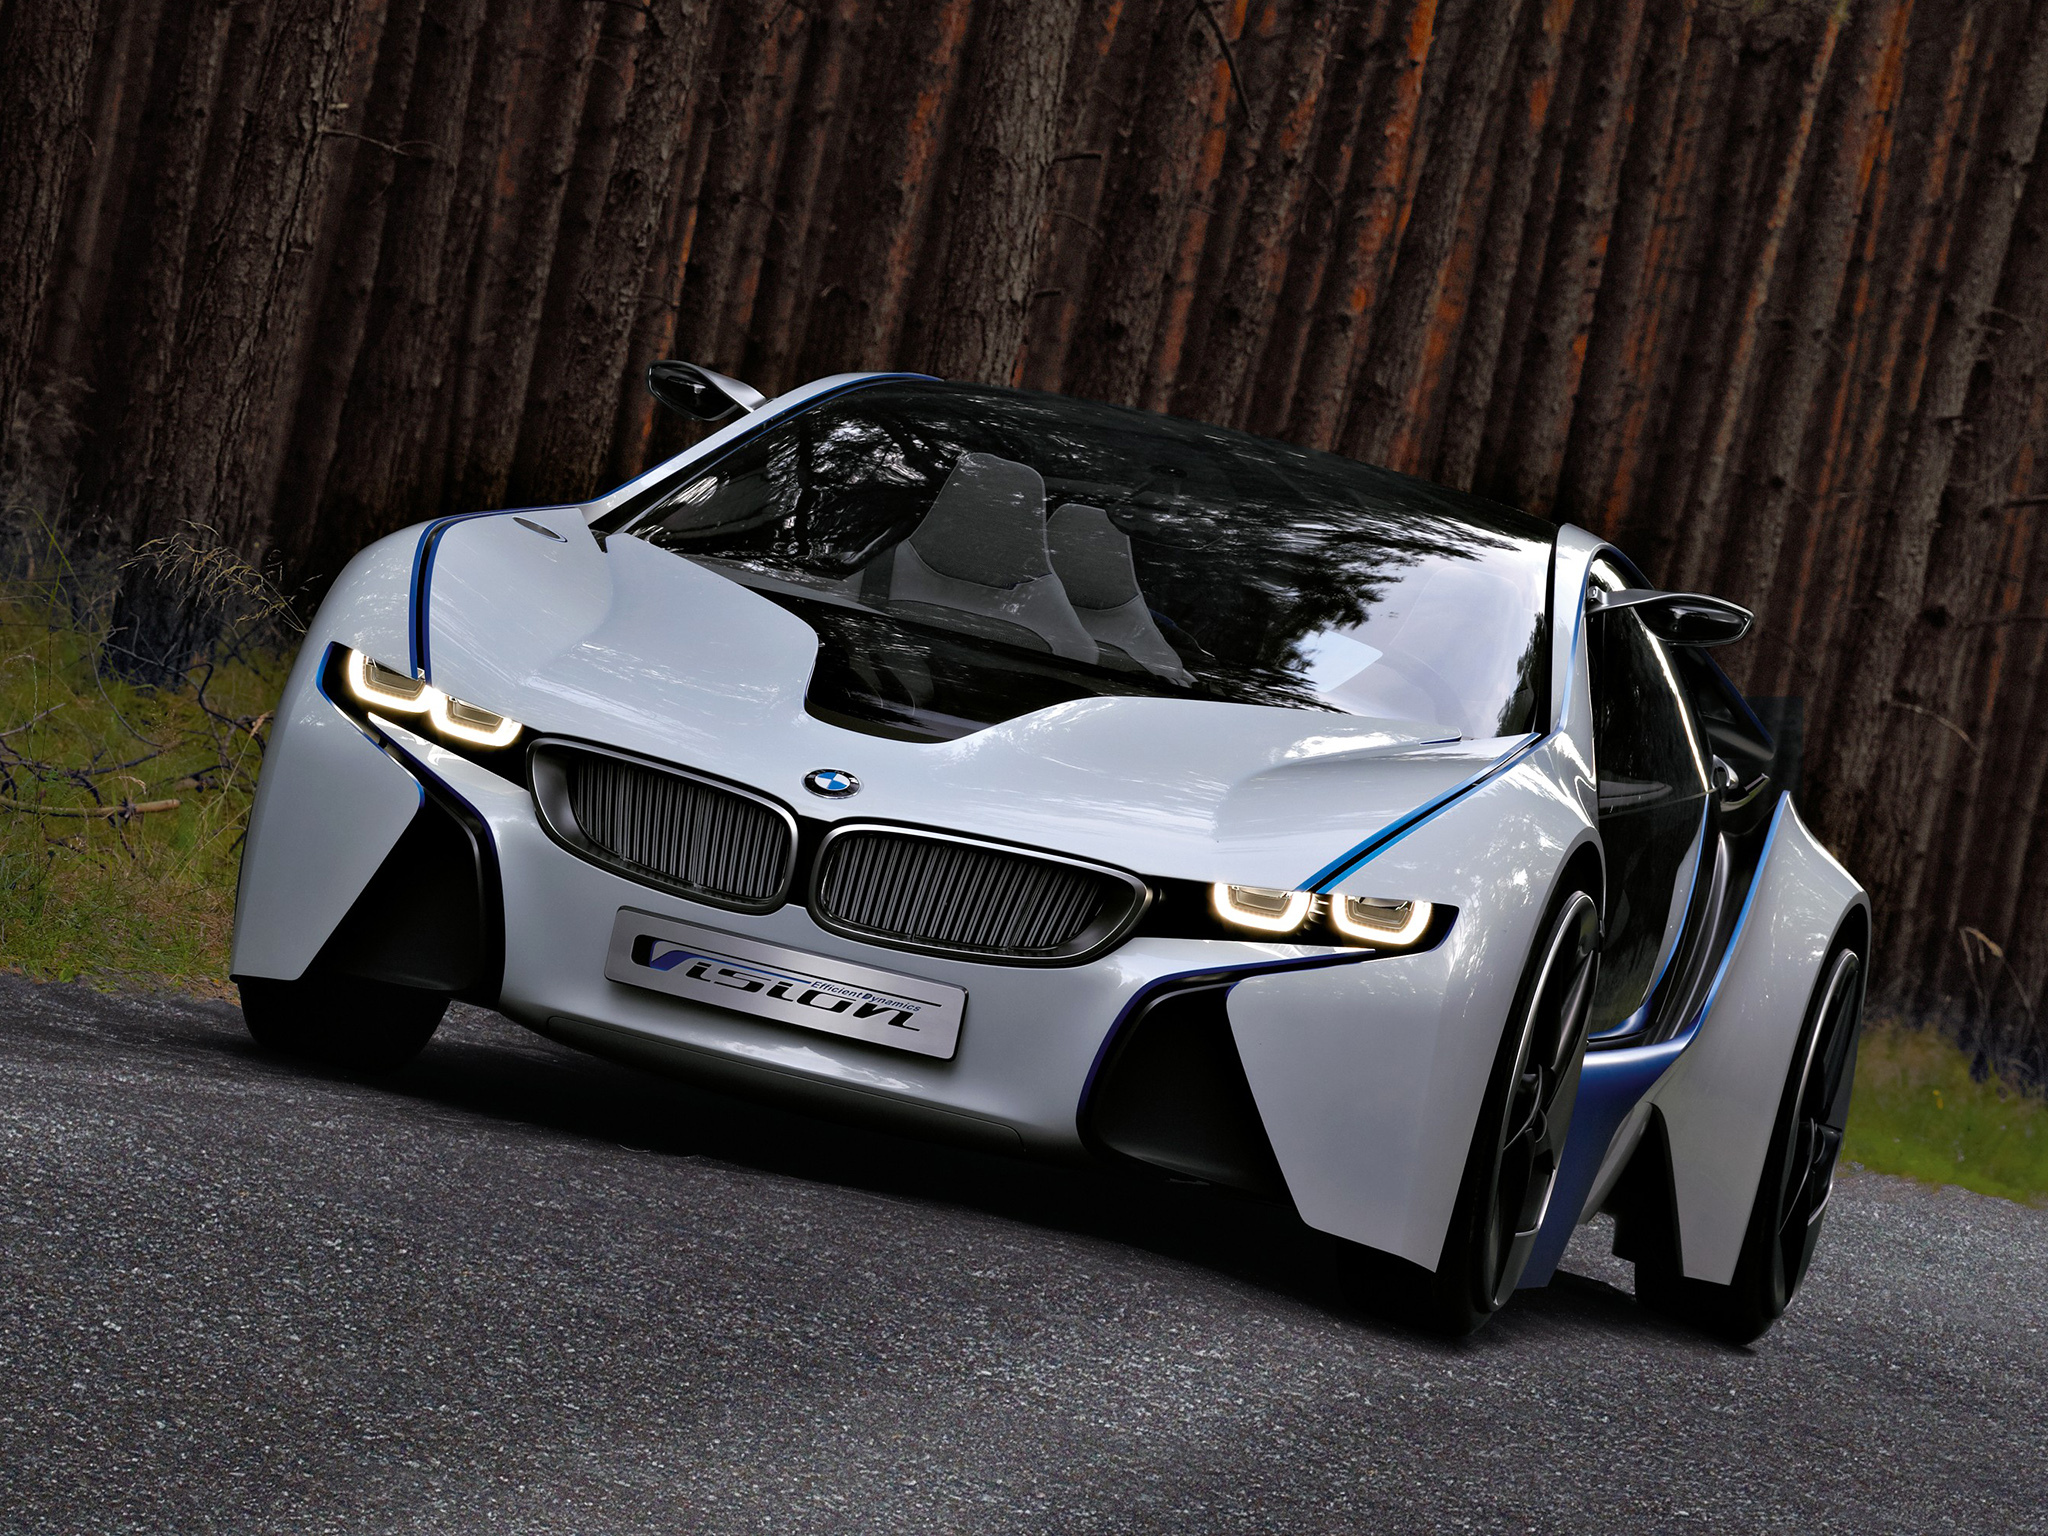 112260 Screensavers and Wallpapers Front View for phone. Download Bmw, Cars, Front View, Concept, Vision, Efficientdynamics pictures for free